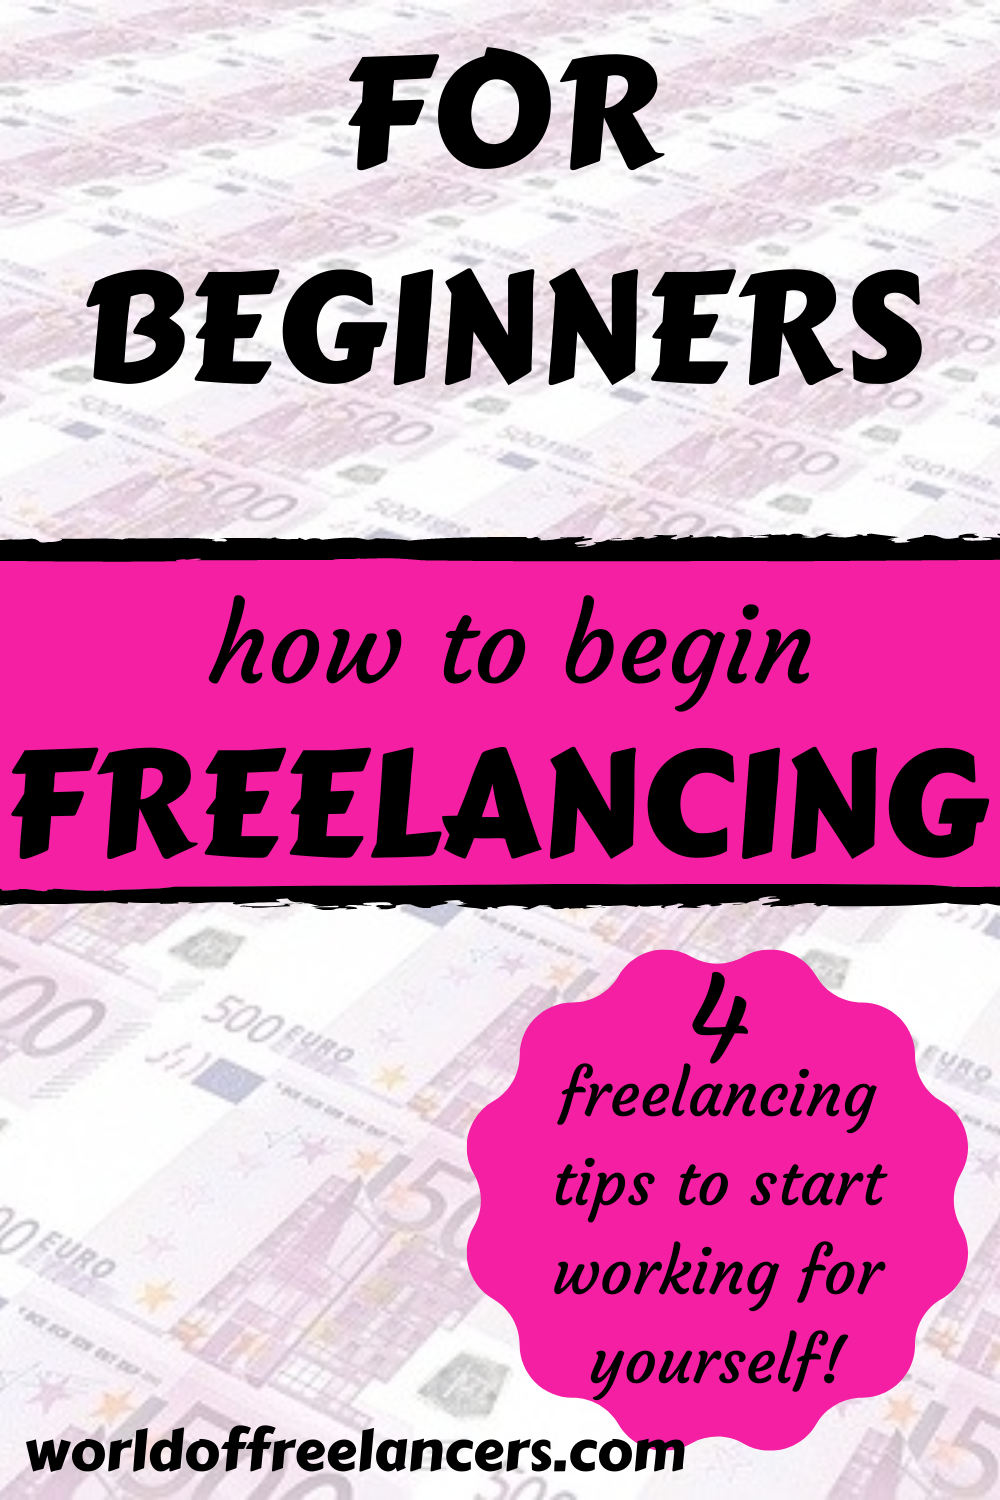 Pinterest image of 500 Euro bills freshly printed with text for beginners how to begin freelancing